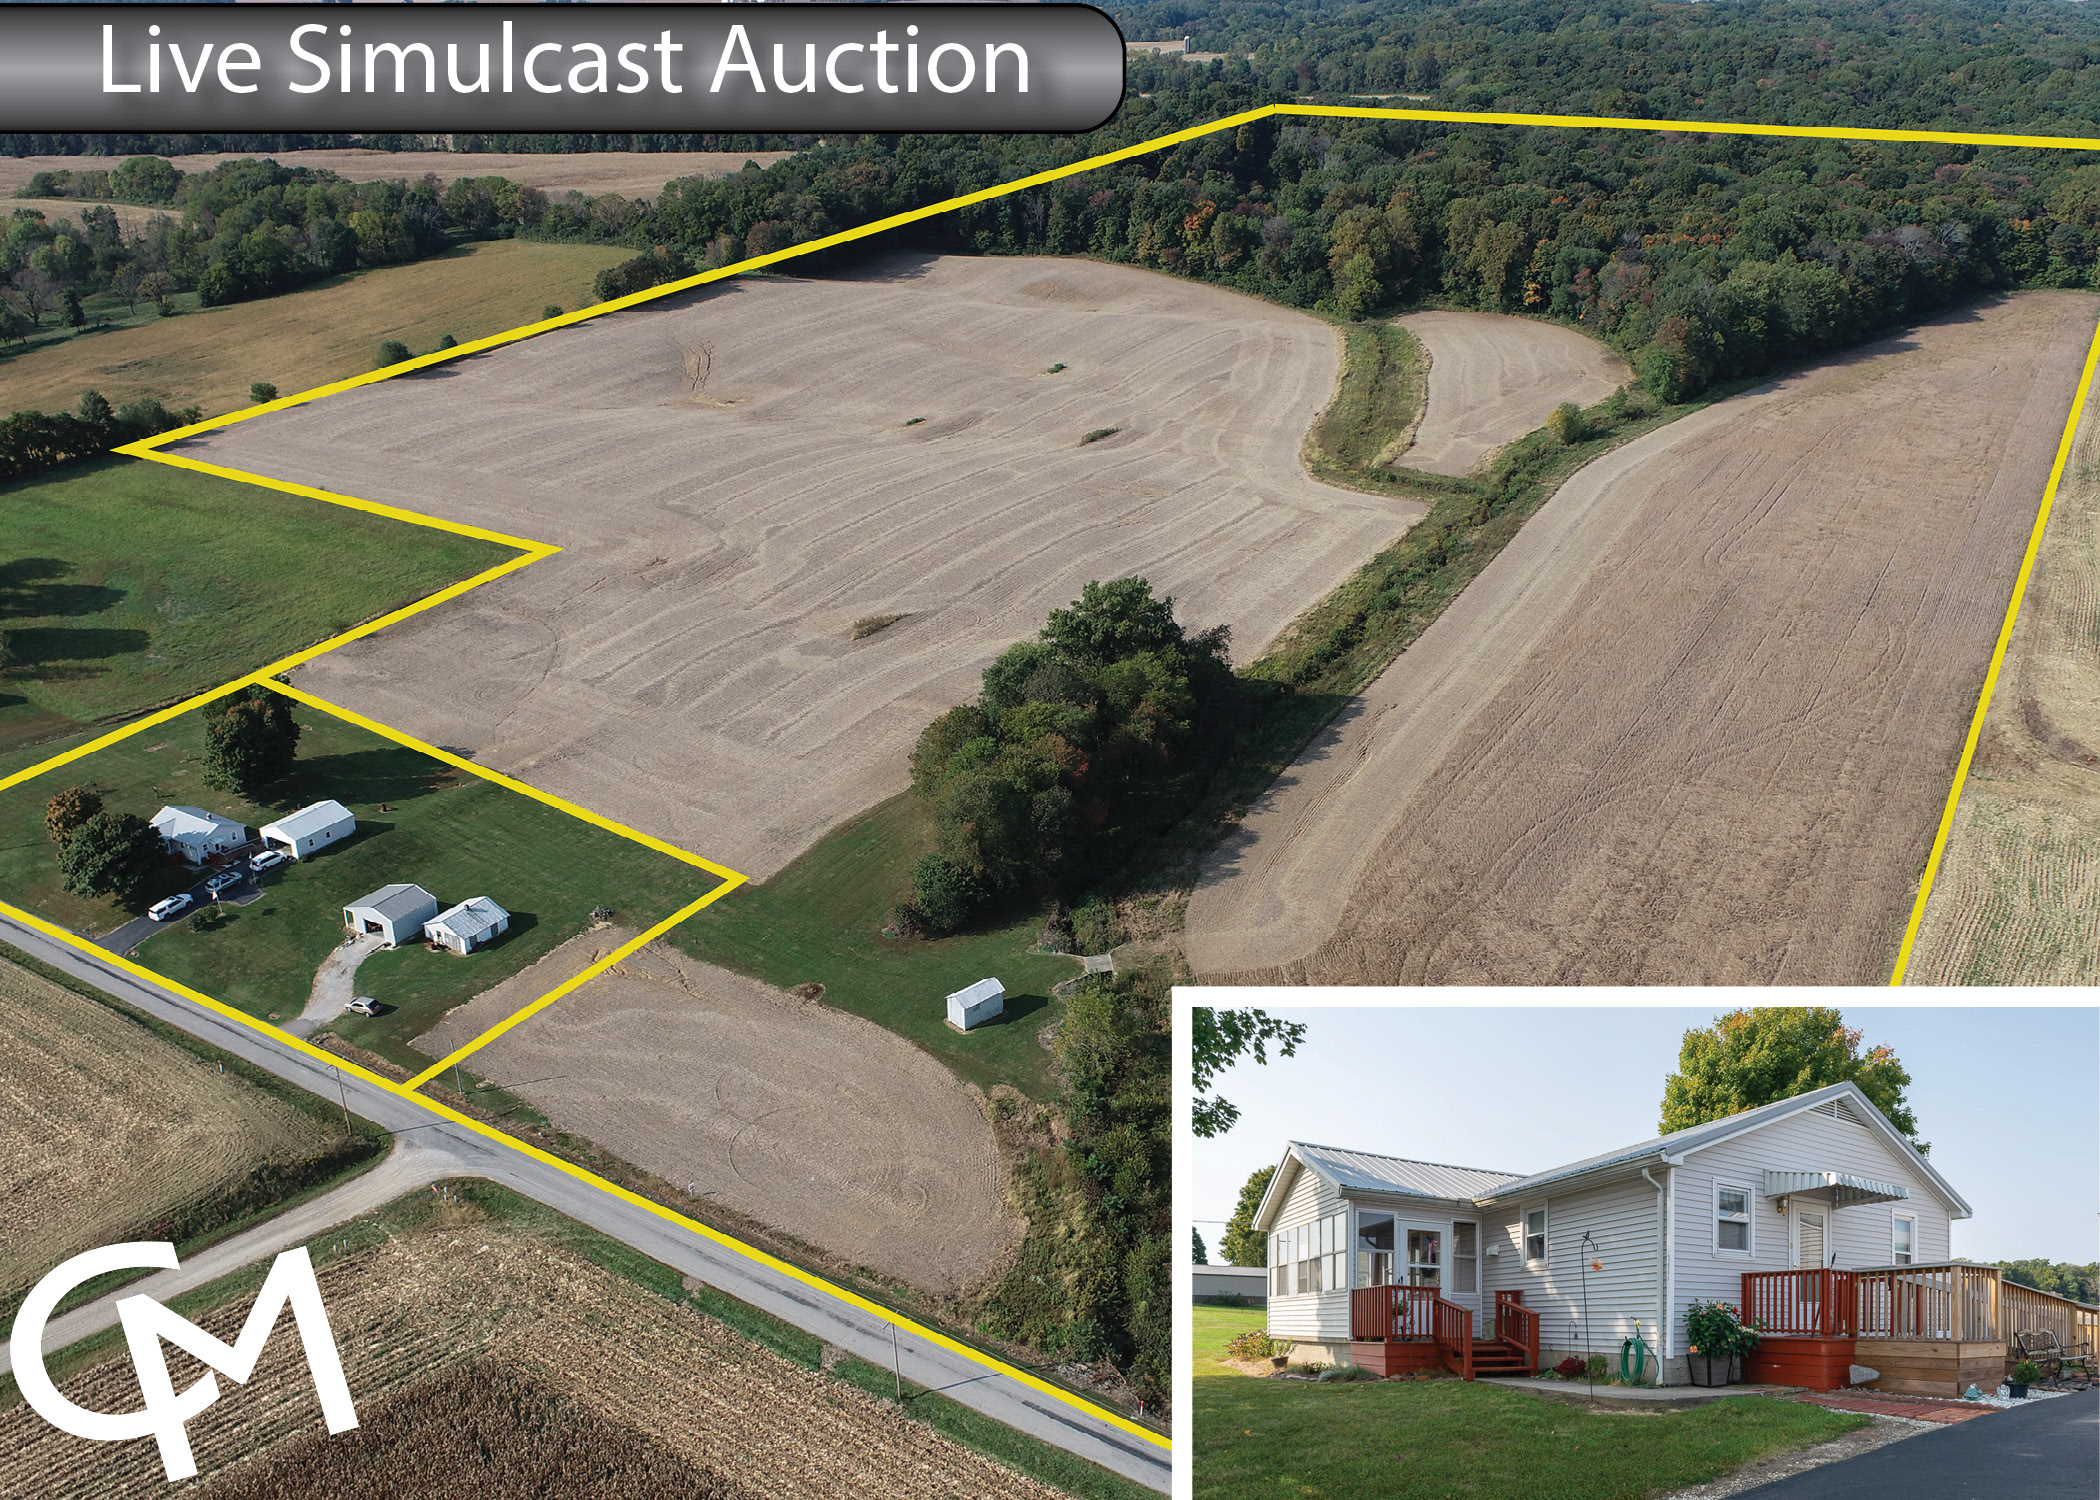 Gibson County, Land Auction, Home for Sale, Francisco Indiana